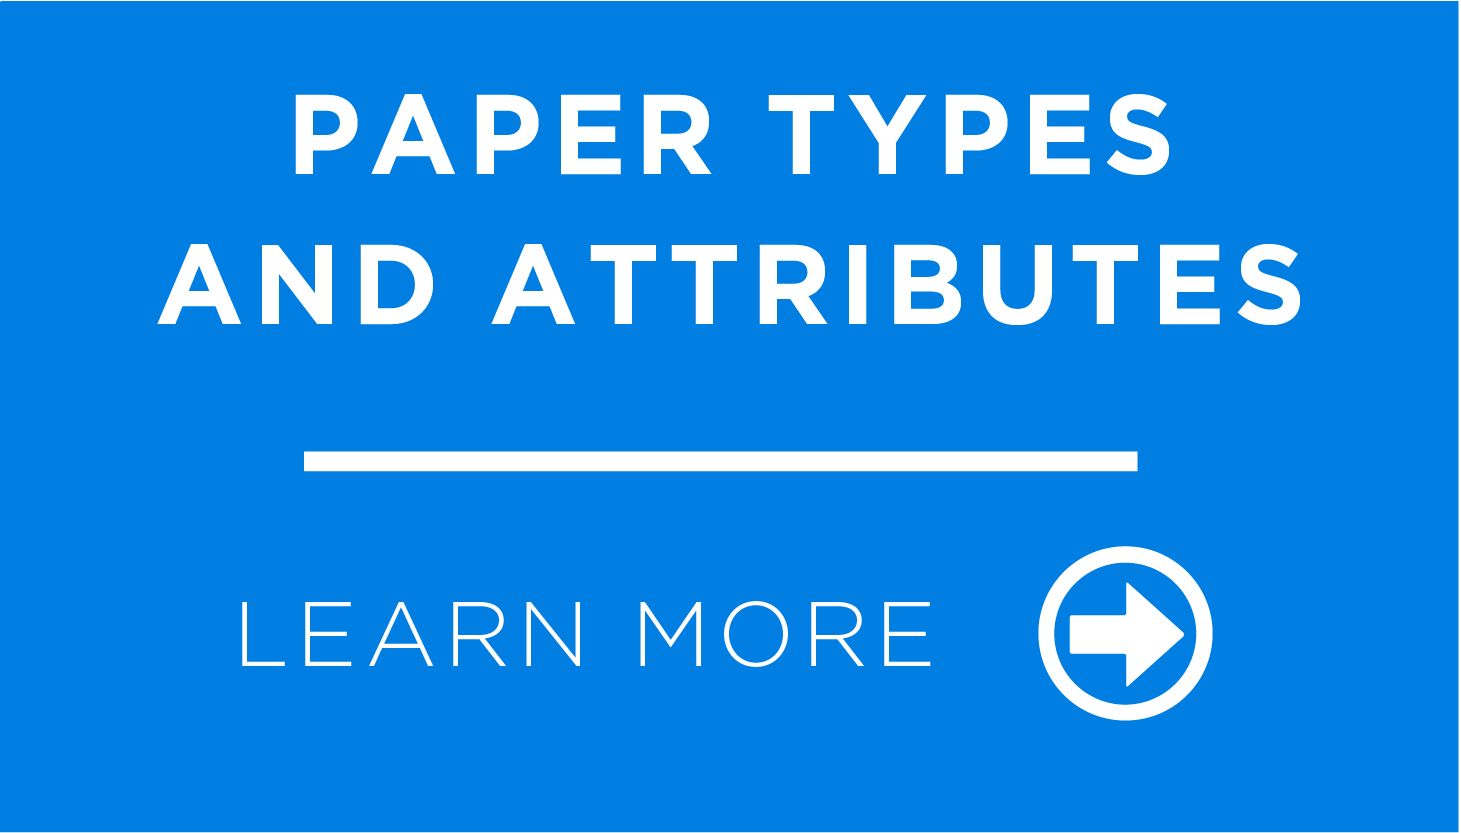 Paper Types and Attributes